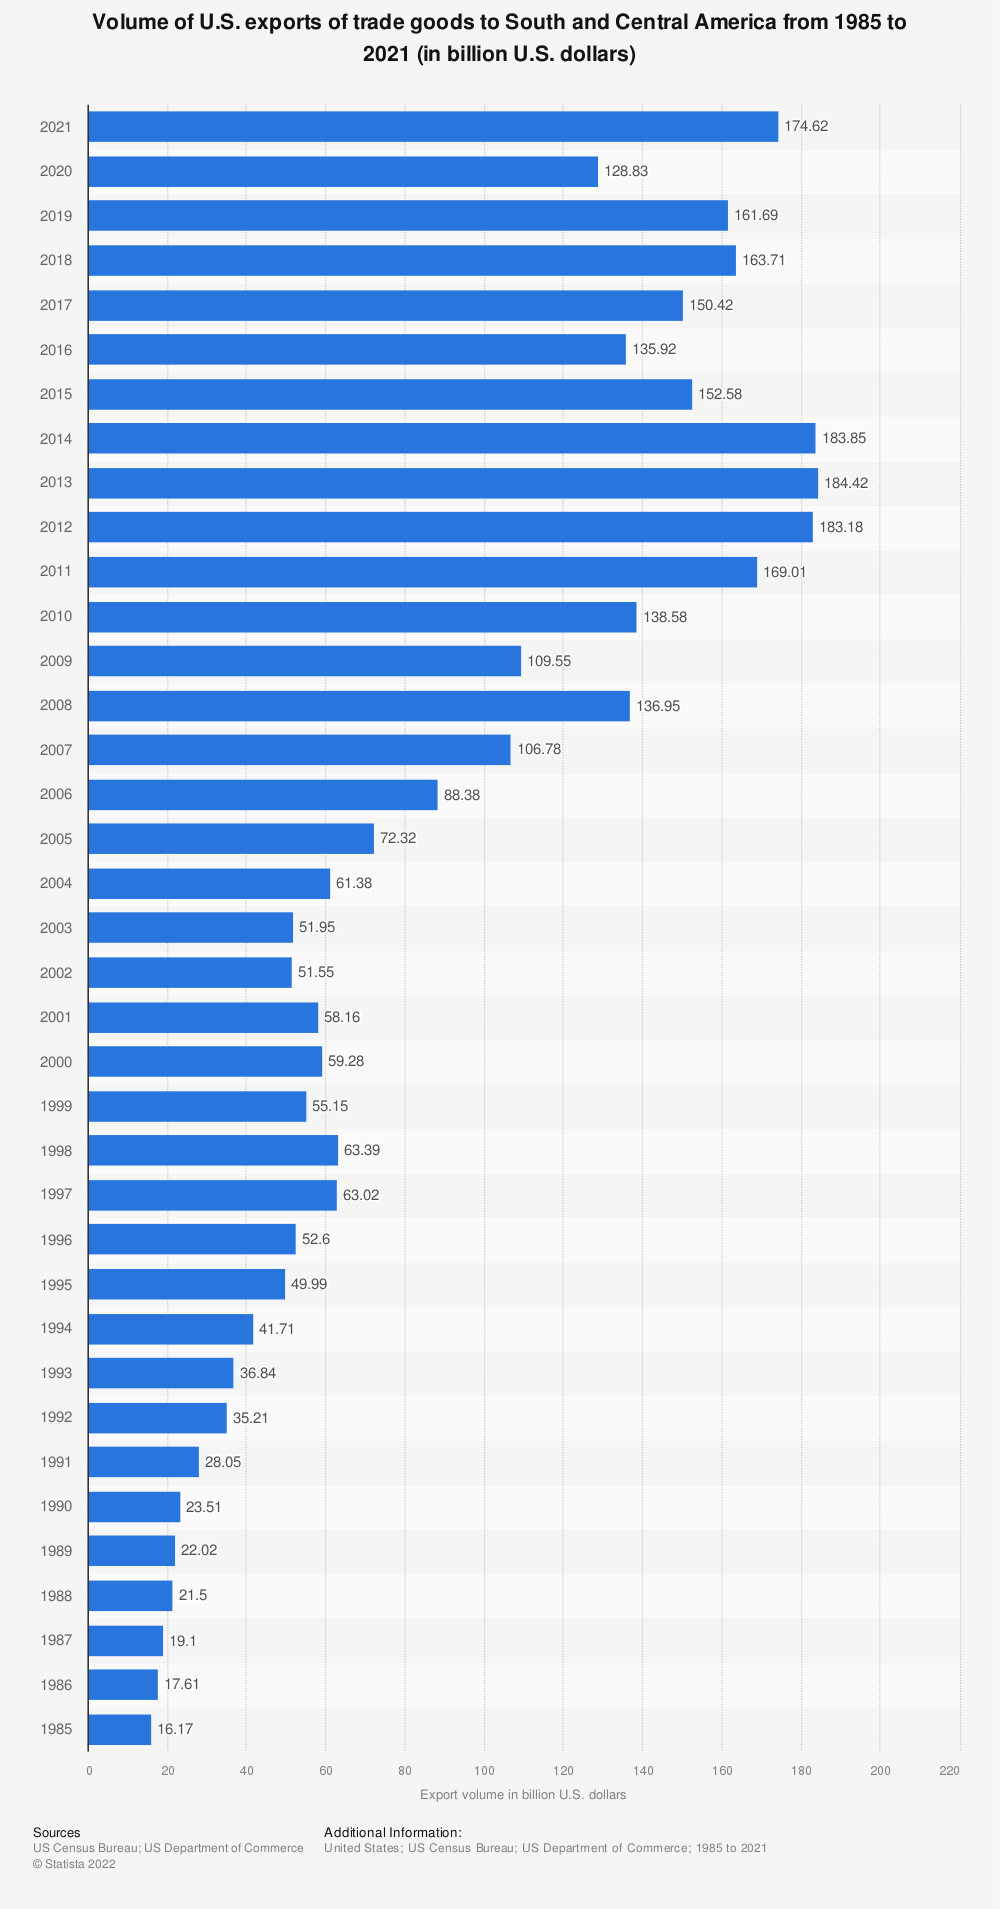 Statistic: Volume of U.S. exports of trade goods to South and Central America from 1985 to 2019 (in billion U.S. dollars) | Statista